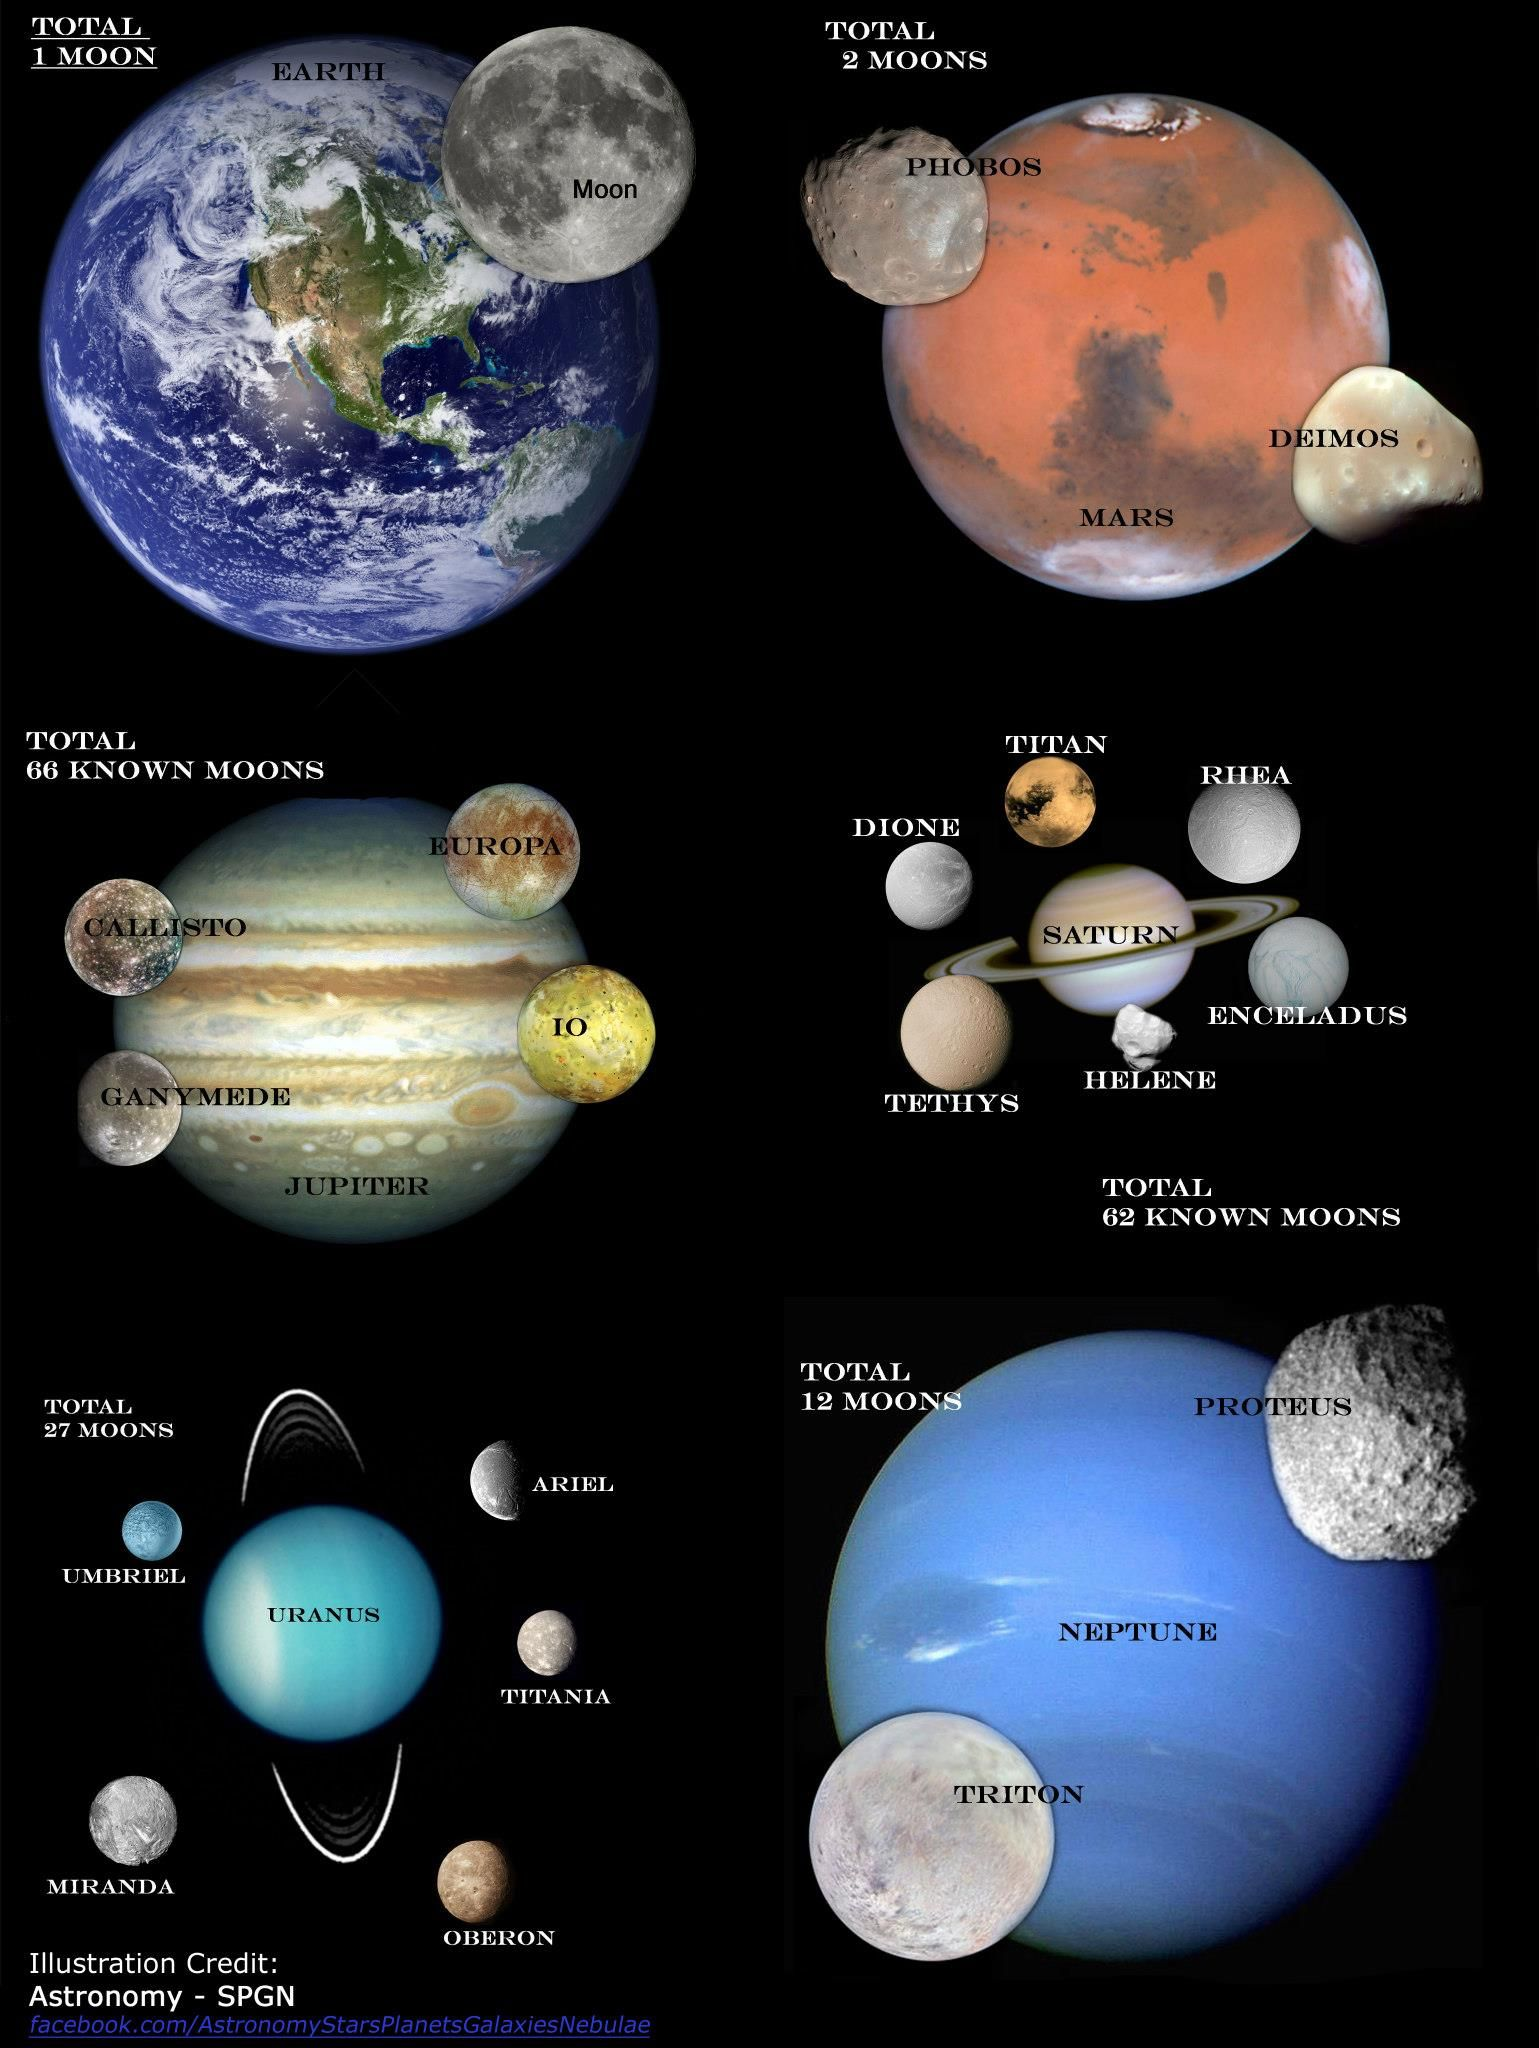 Moons of the Solar System> http://en.wikipedia.org/wiki ...